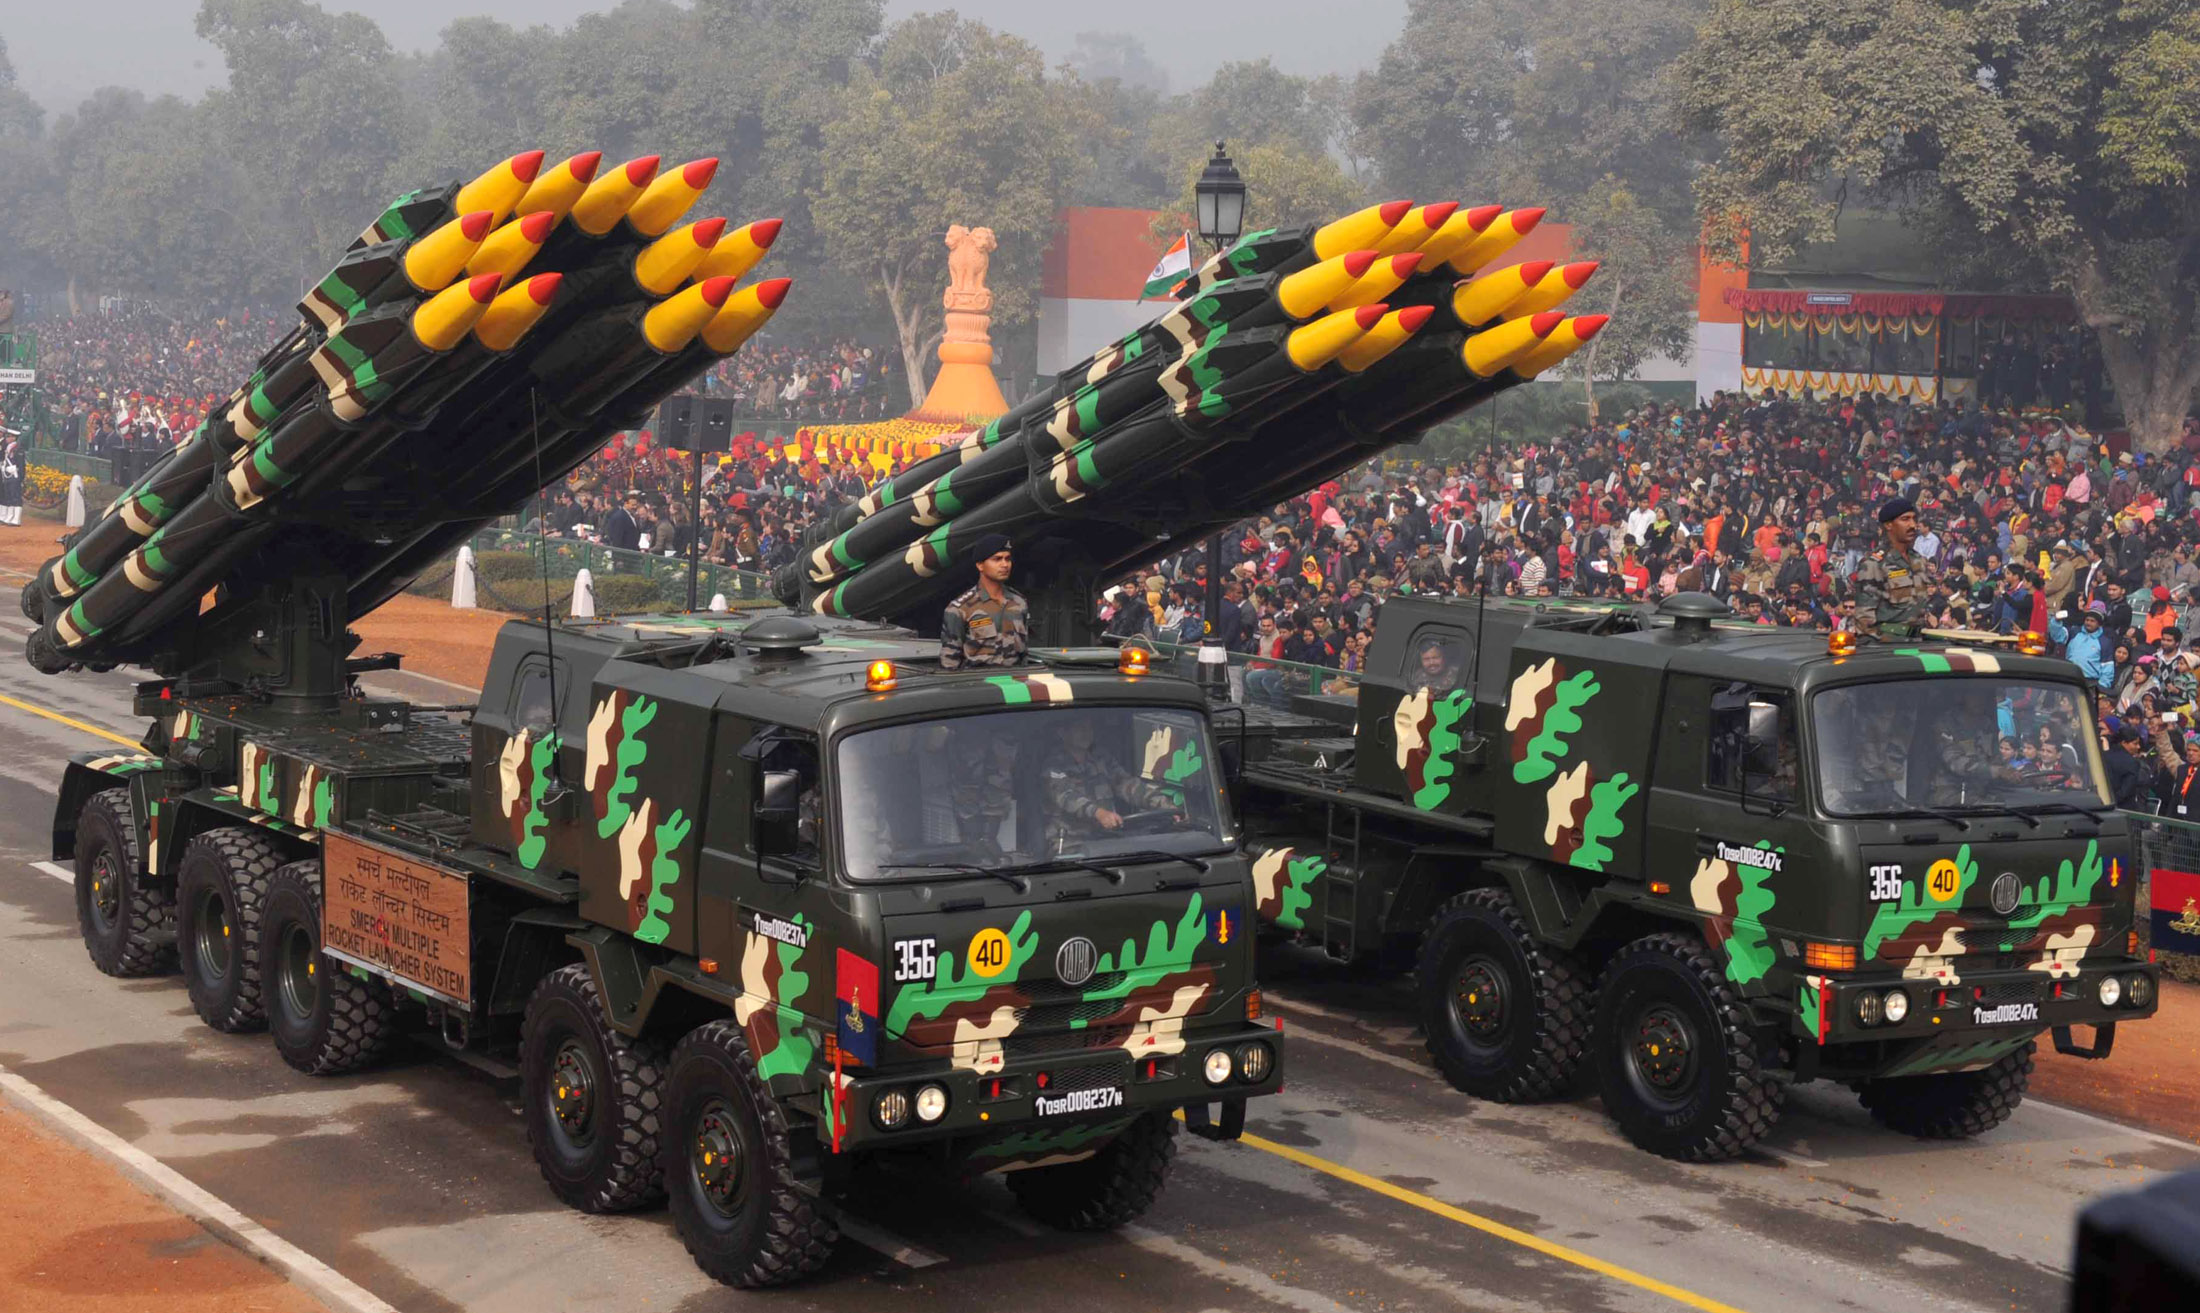 Smerch Multiple Rocket Launcher System passes through the Rajpath, on the occasion of the 67th Republic Day Parade 2016, in New Delhi on January 26, 2016.